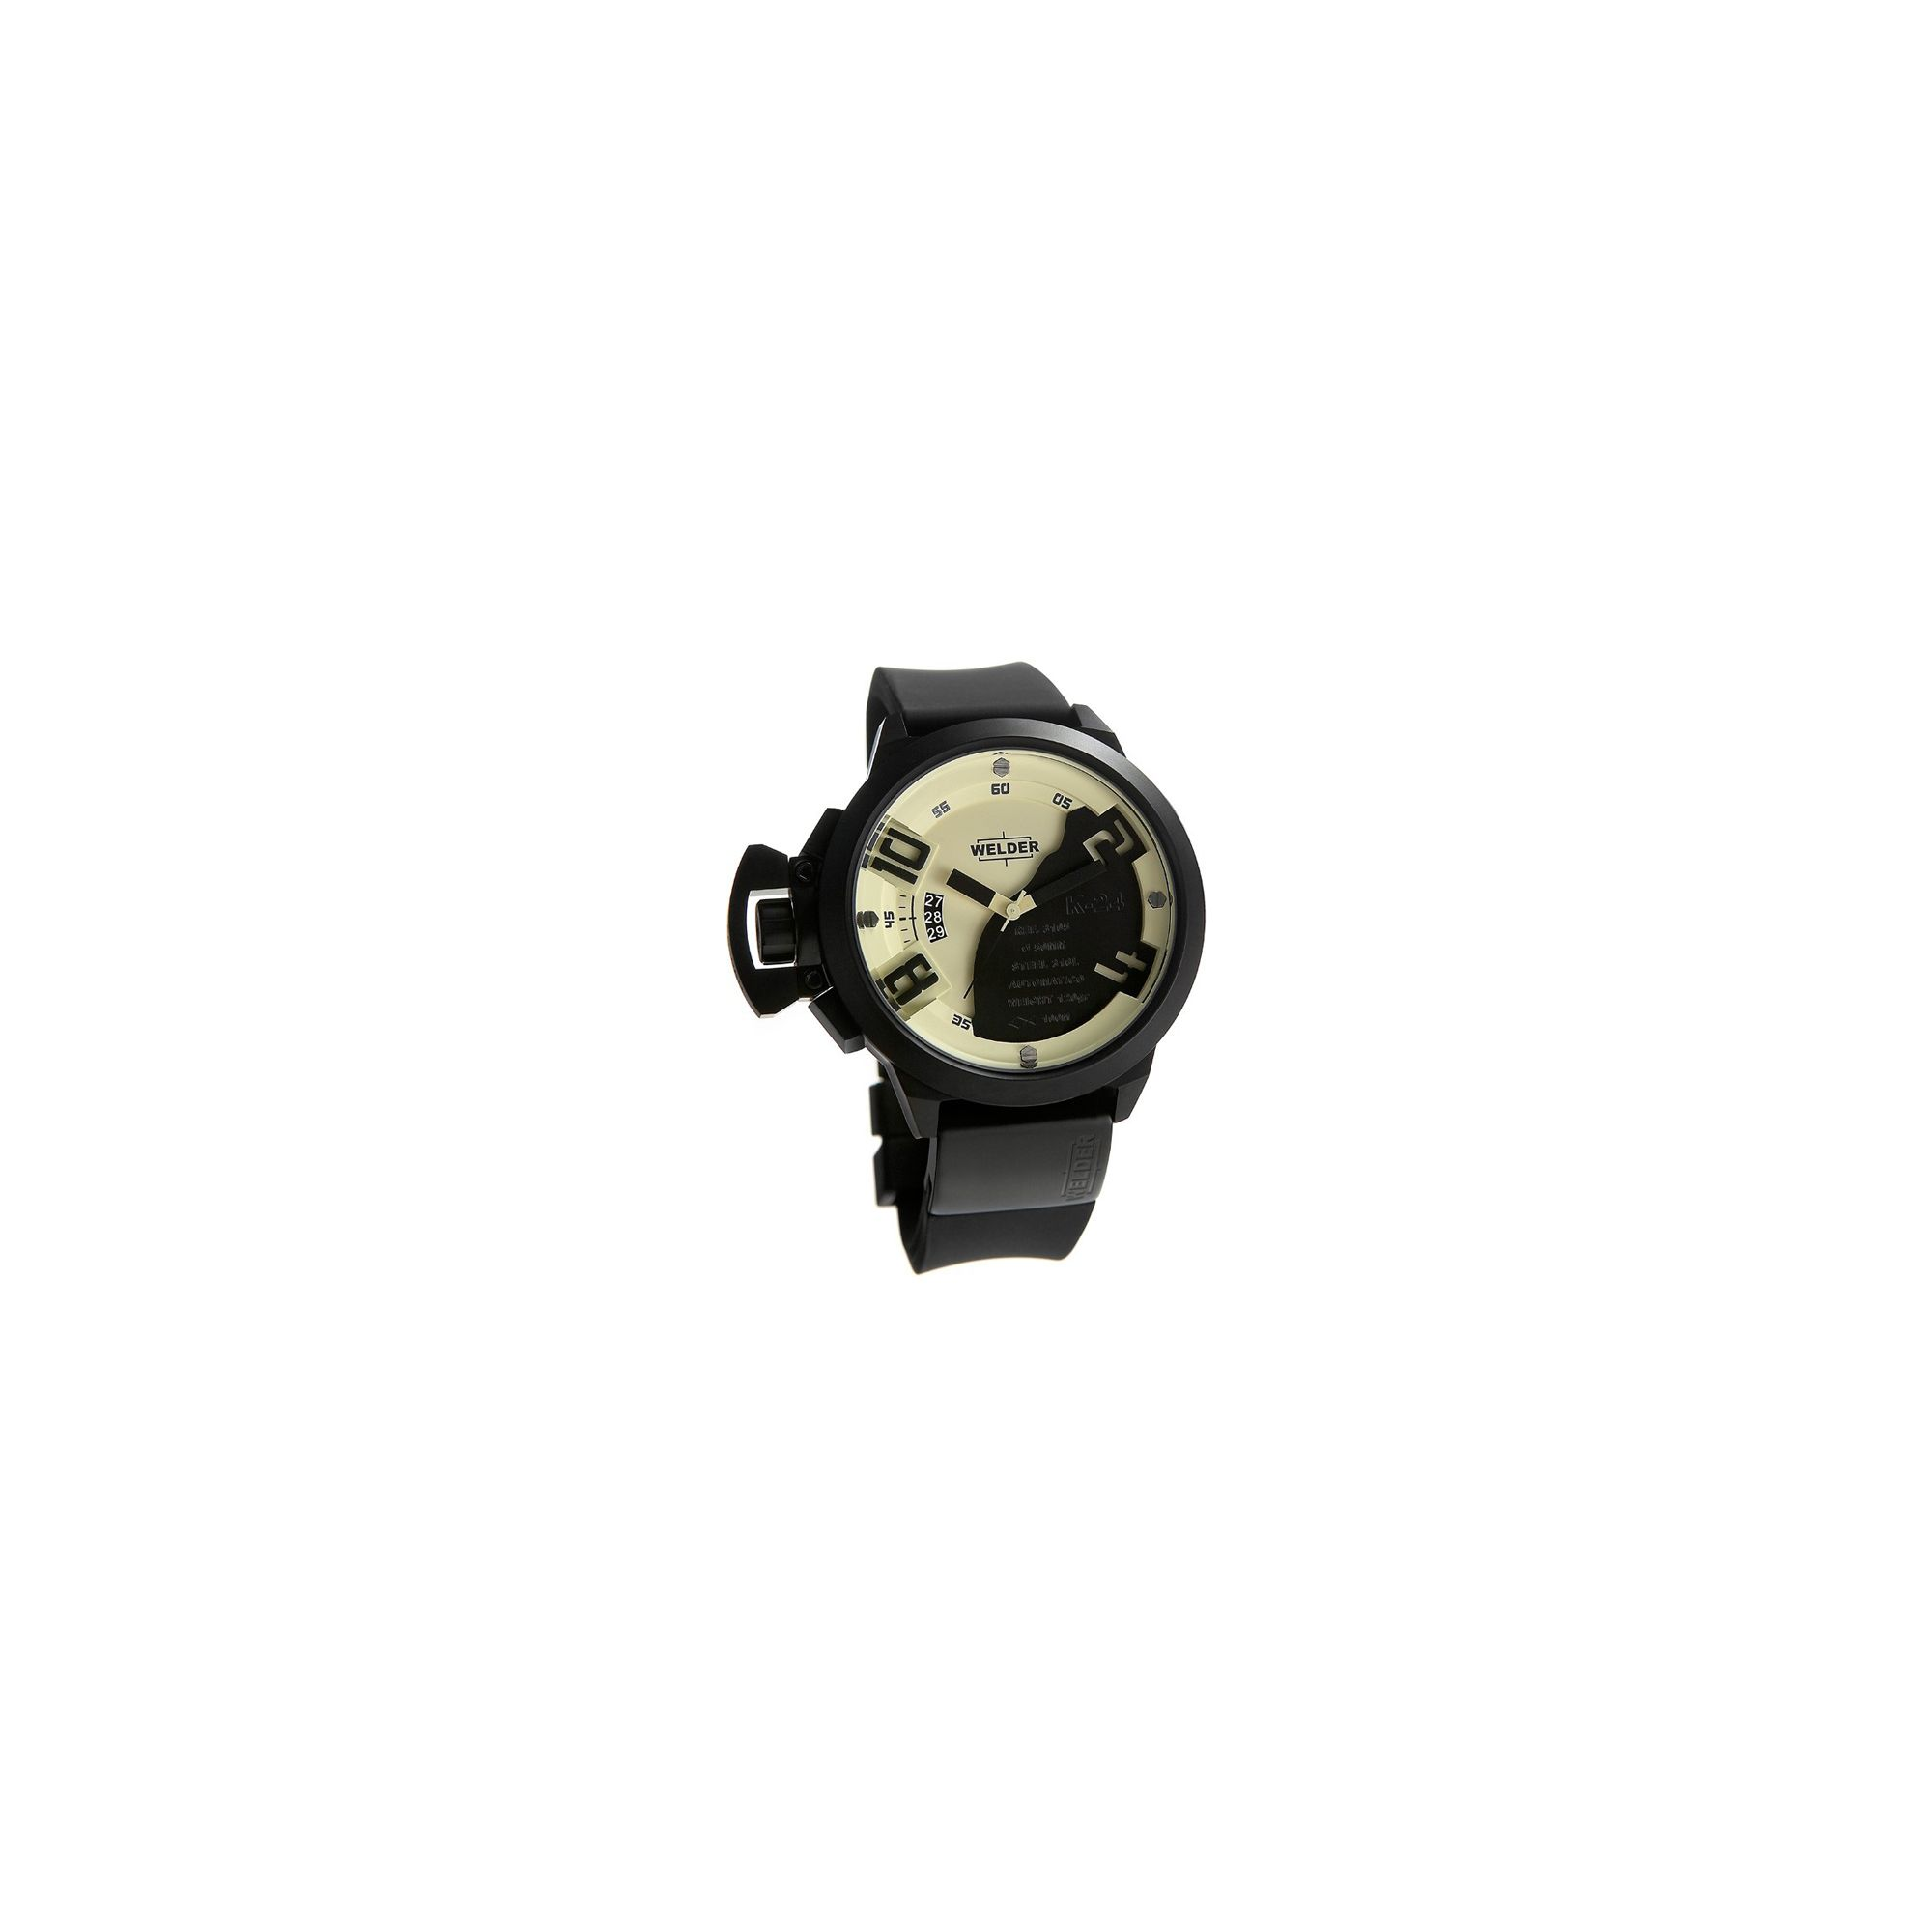 Welder Gents Cream Dial Black Rubber Strap Watch K24-3105 at Tesco Direct